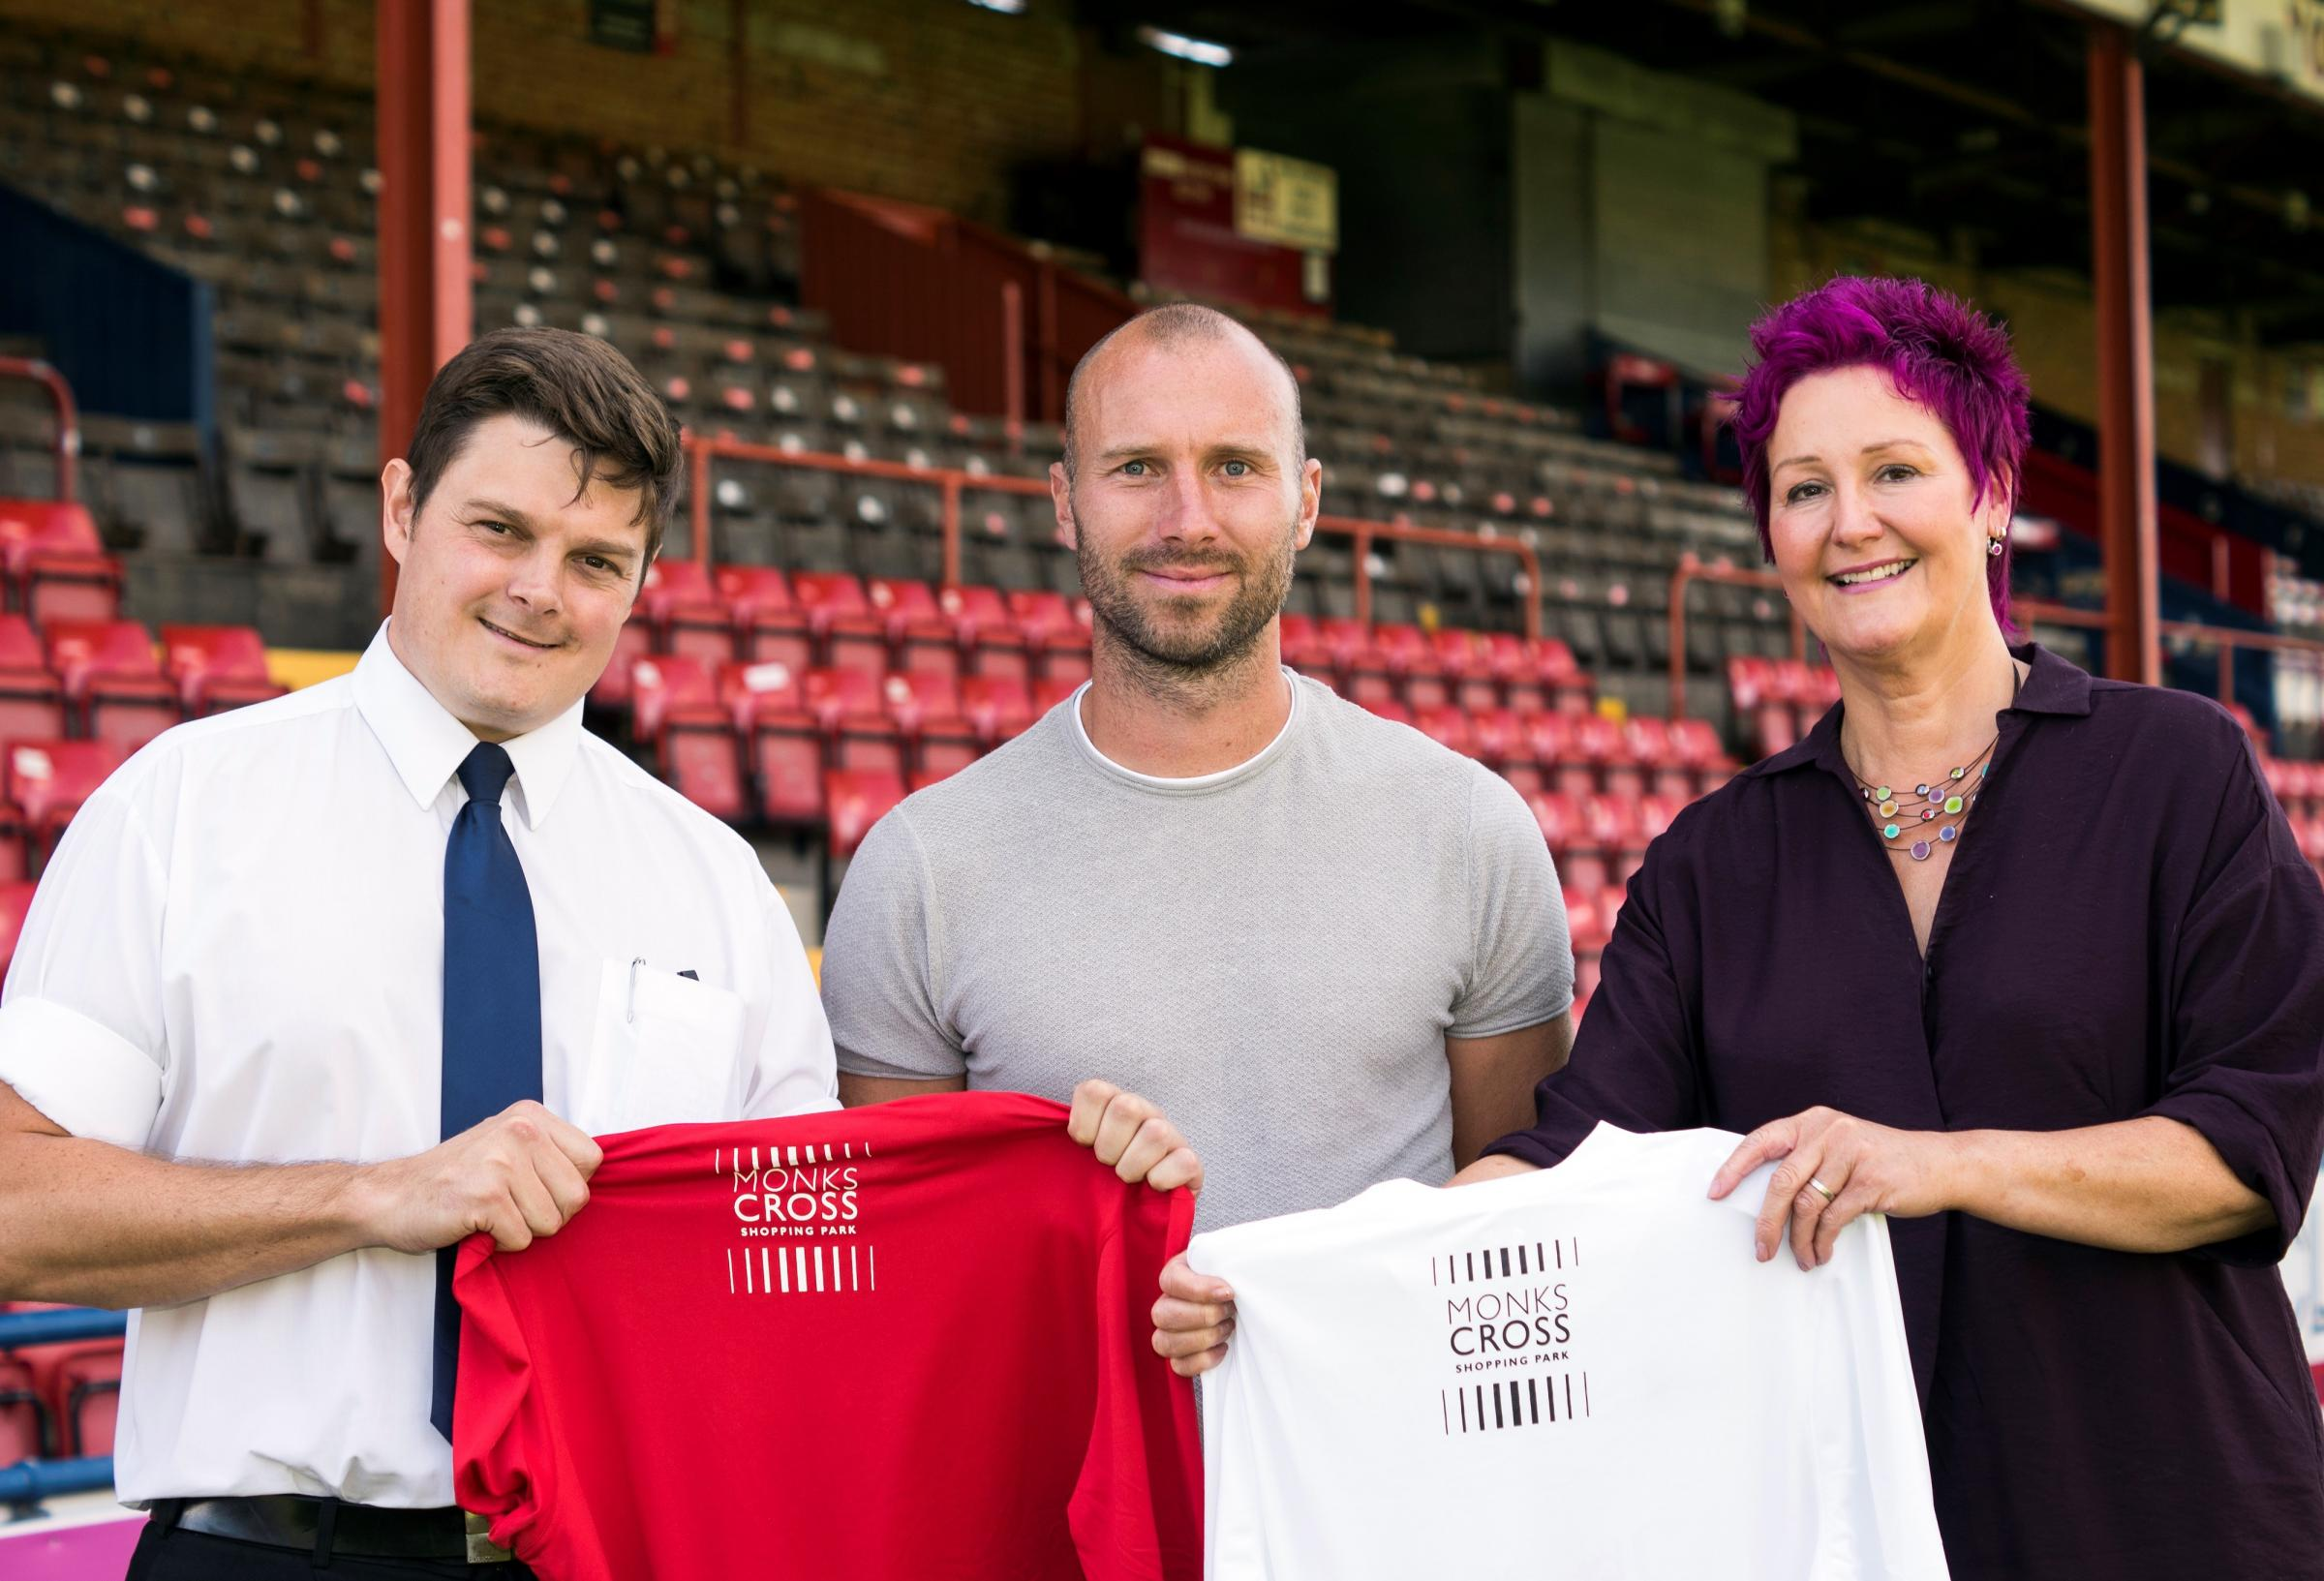 WELCOME BACK: Returning York City midfielder Russ Penn (centre) poses with Katherine Sharp, the centre manager for new back-of-the-shirt sponsors Monks Cross Shopping Park. City supporter Carl Dales, who is the security supervisor at Monks Cross, is also